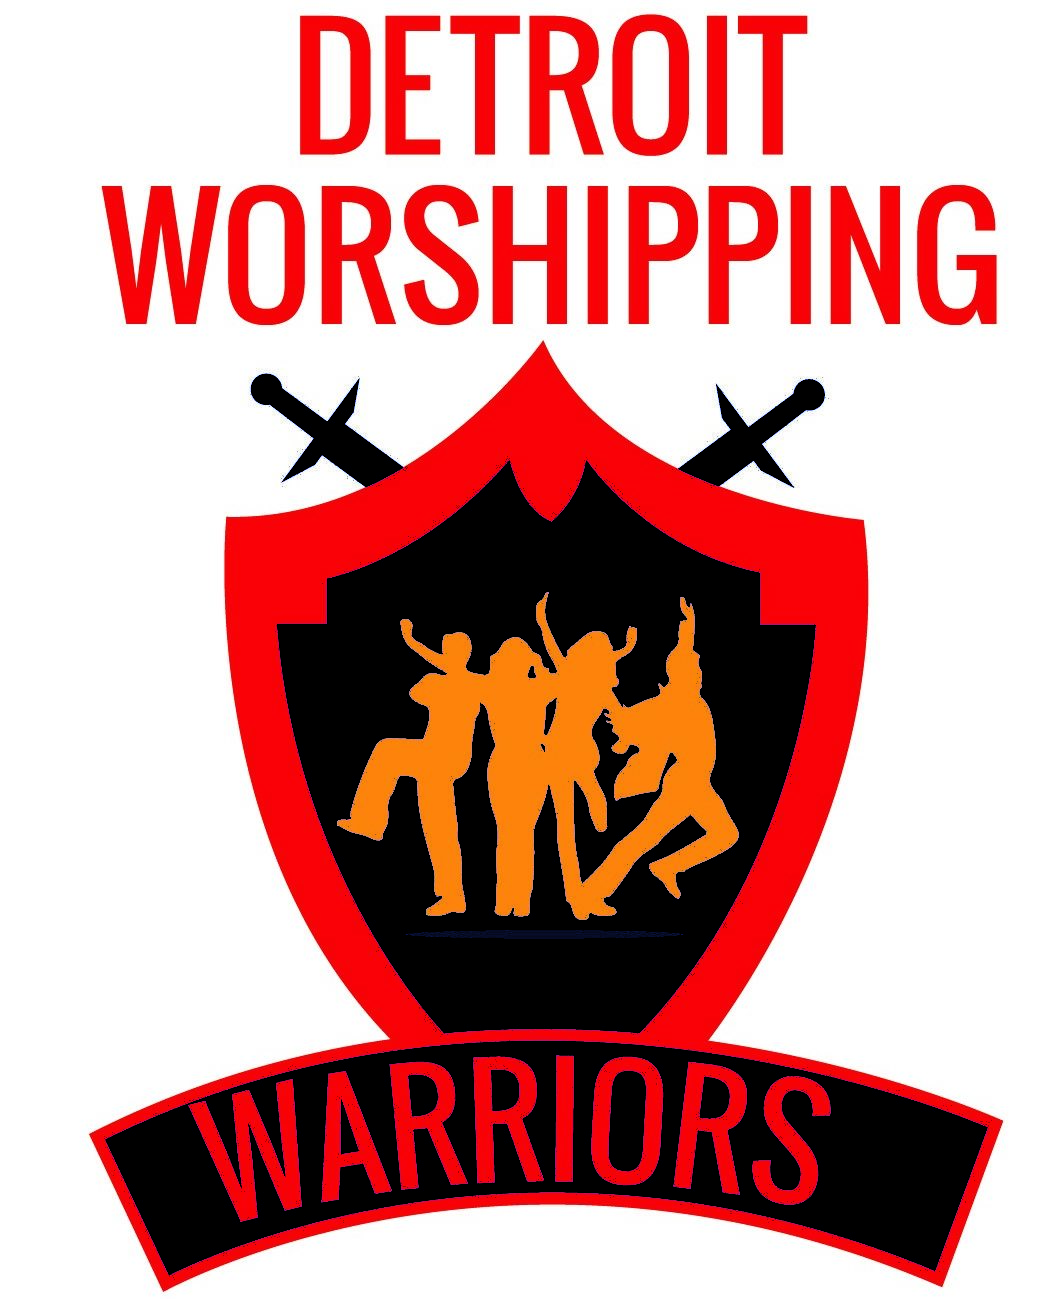 Detroit Worshipping Warriors